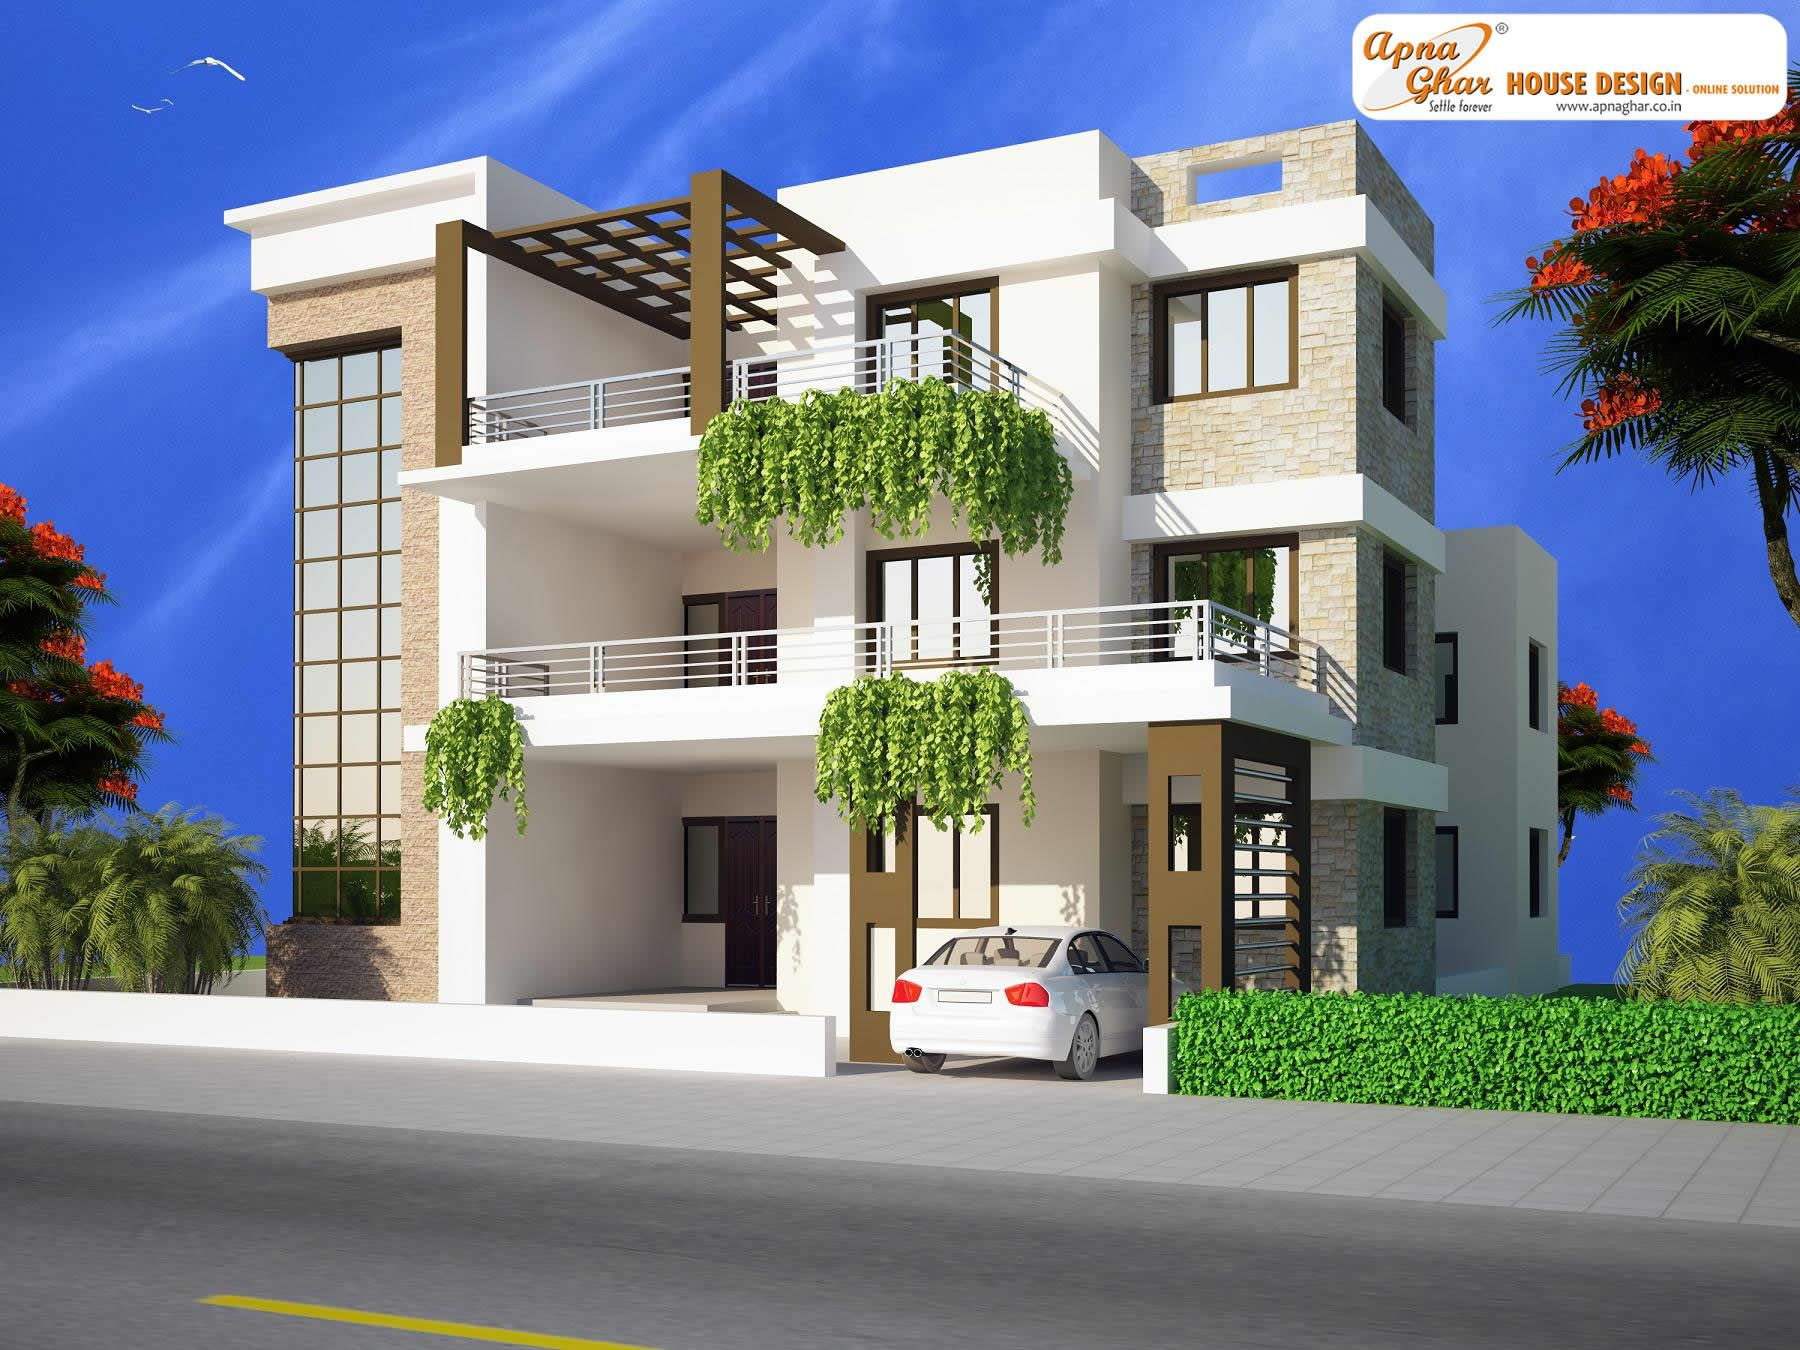 11 Bedroom Modern Triplex 3 Floor House Design Area 378 Sq Mts 18m X 21m Click On This L Contemporary House Design Small House Design House Gate Design